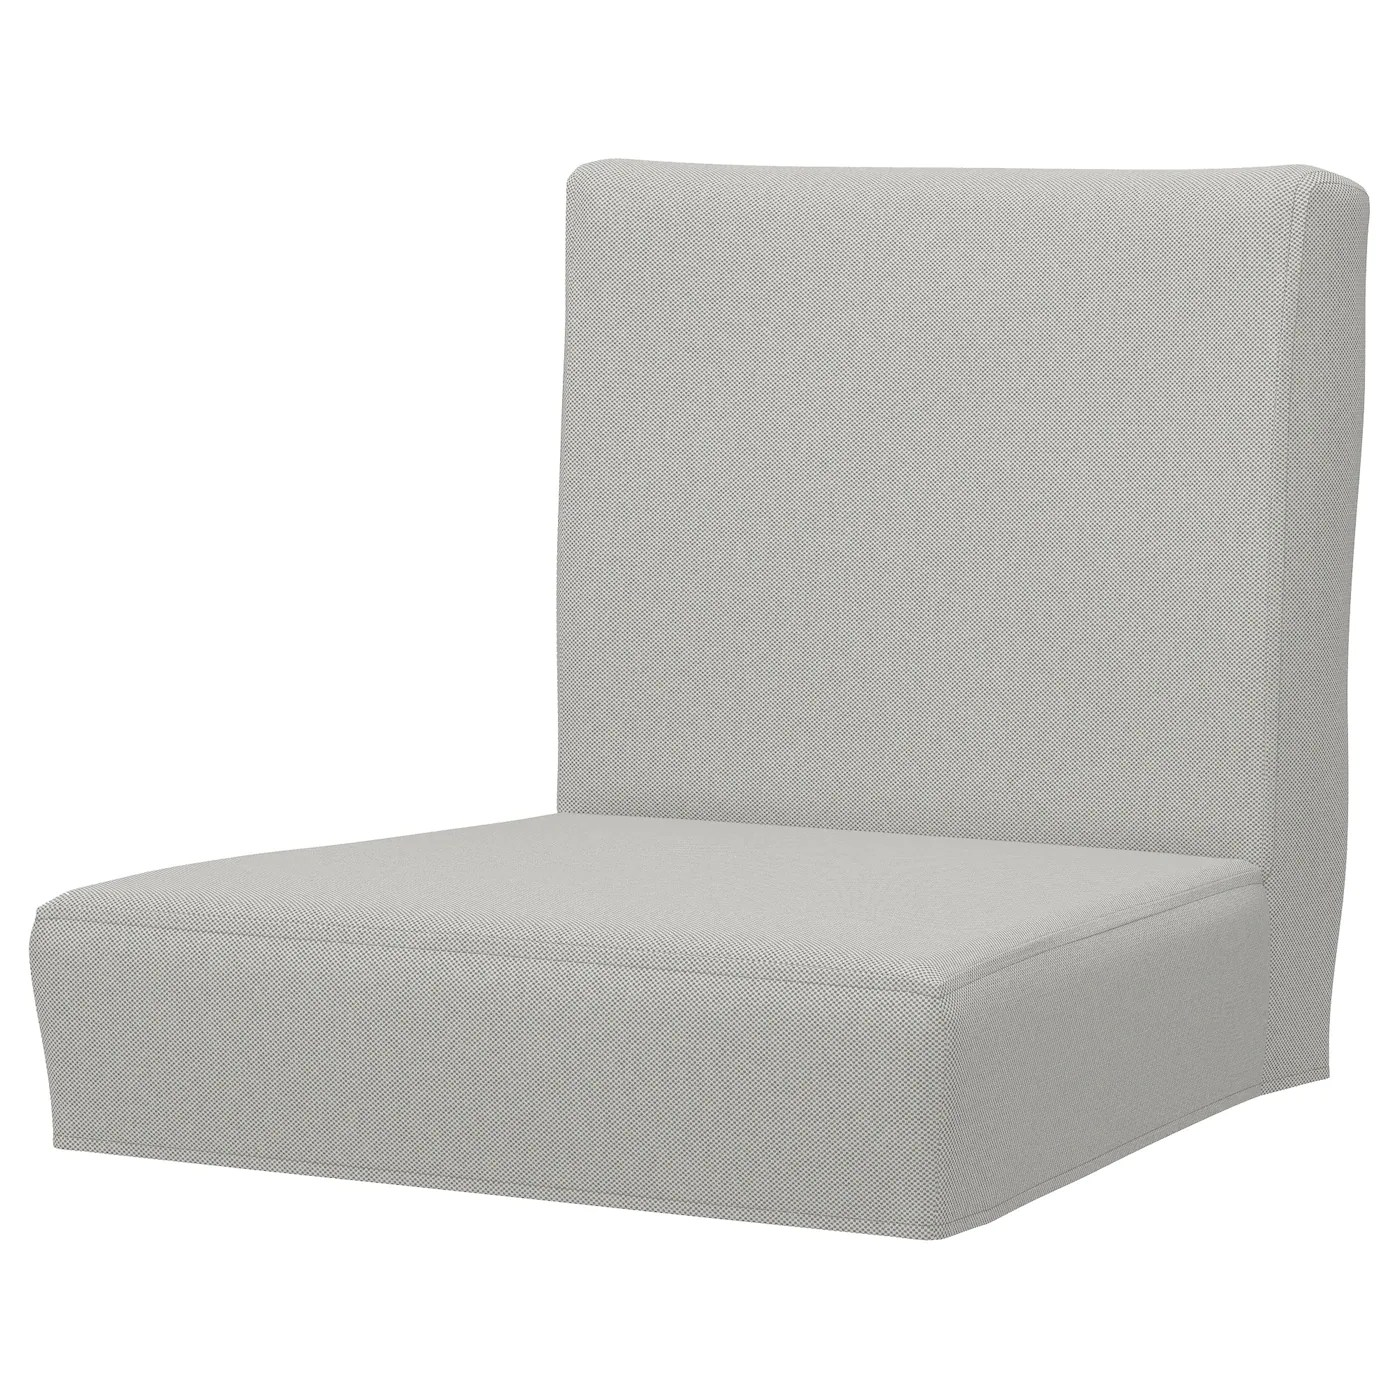 ikea chair covers henriksdal ebay overstuffed chairs with ottomans cover for bar stool backrest ramna light